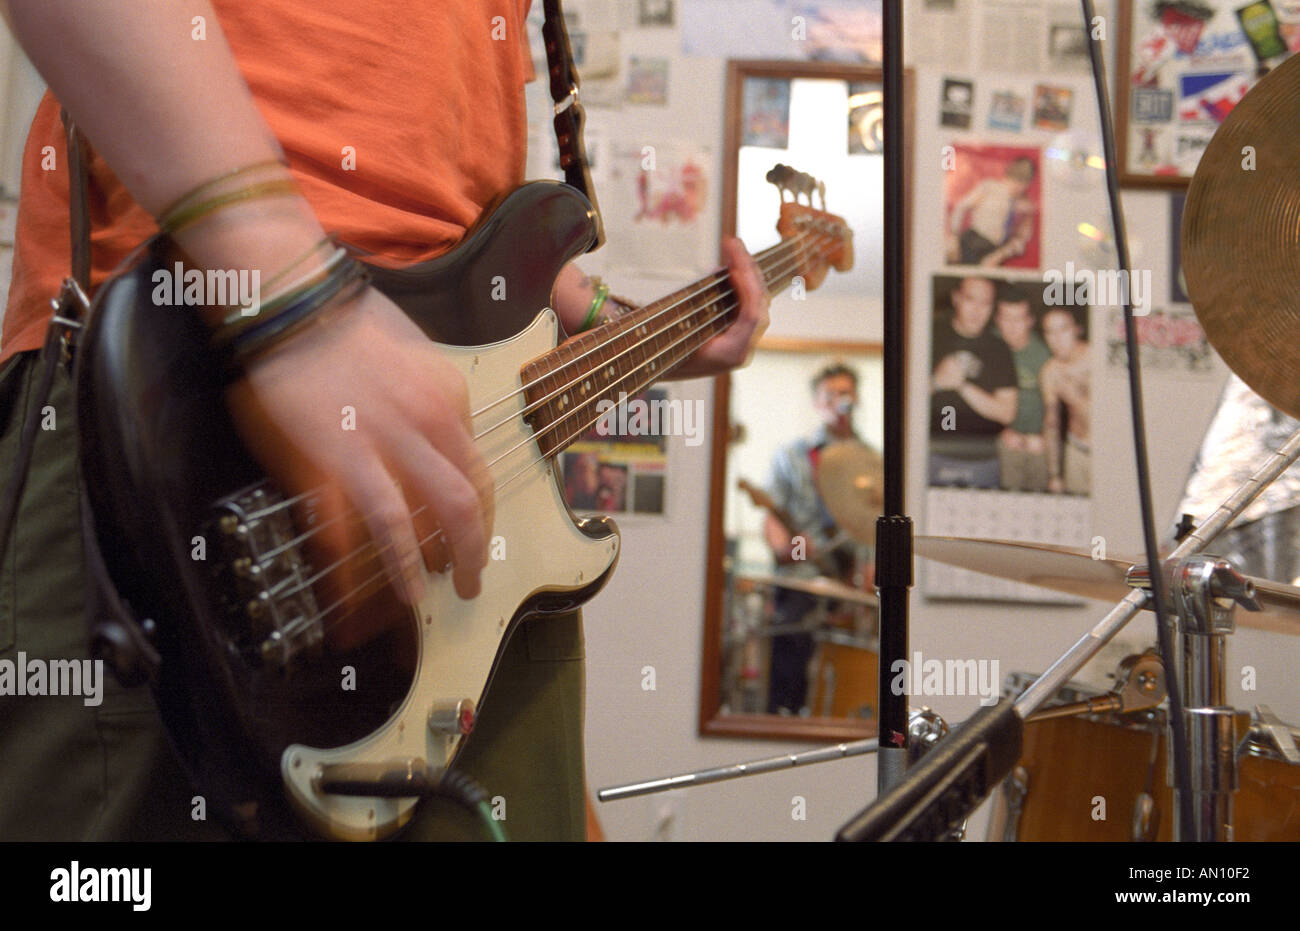 Punk Rock Bedroom High School Punk Rock Band 36drive Practices In Bedroom Stock